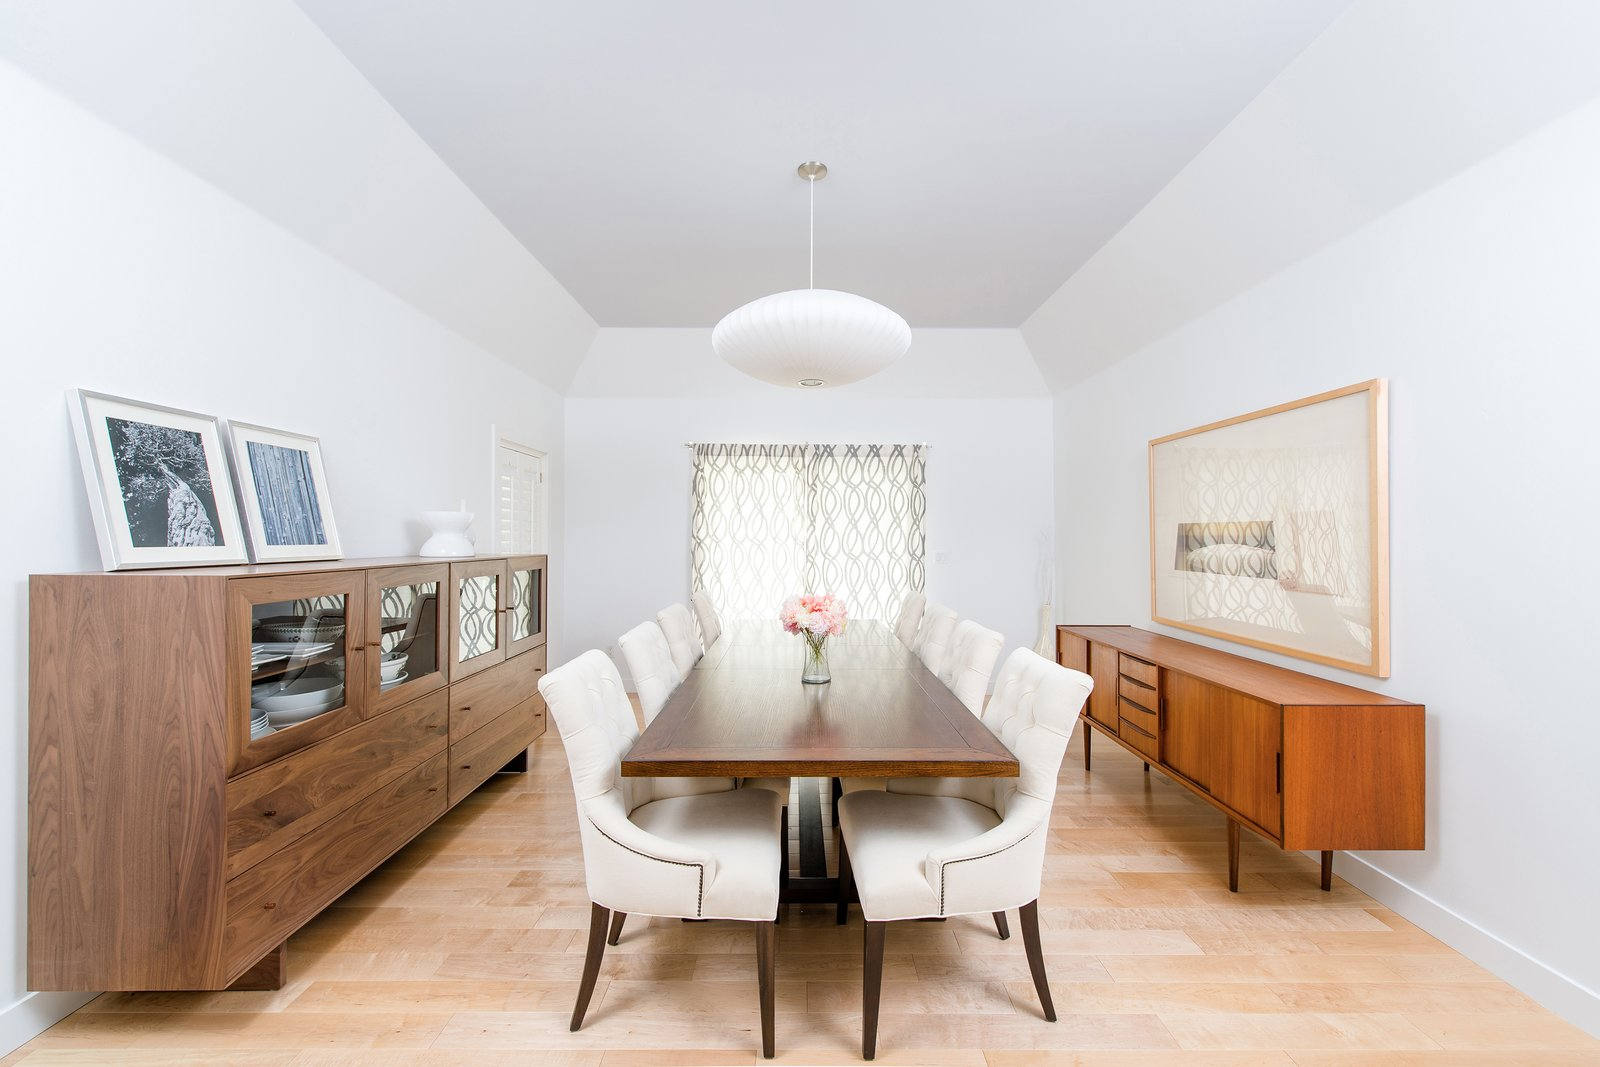 Dining Room, Storage, Chair, Lamps, Table, Ceiling Lighting, Pendant Lighting, Accent Lighting, and Light Hardwood Floor A large nelson bubble lamp and mid-century furniture at the formal dining room complement the painted blue coffered ceiling.  Mid century modern from Villa Park Modern